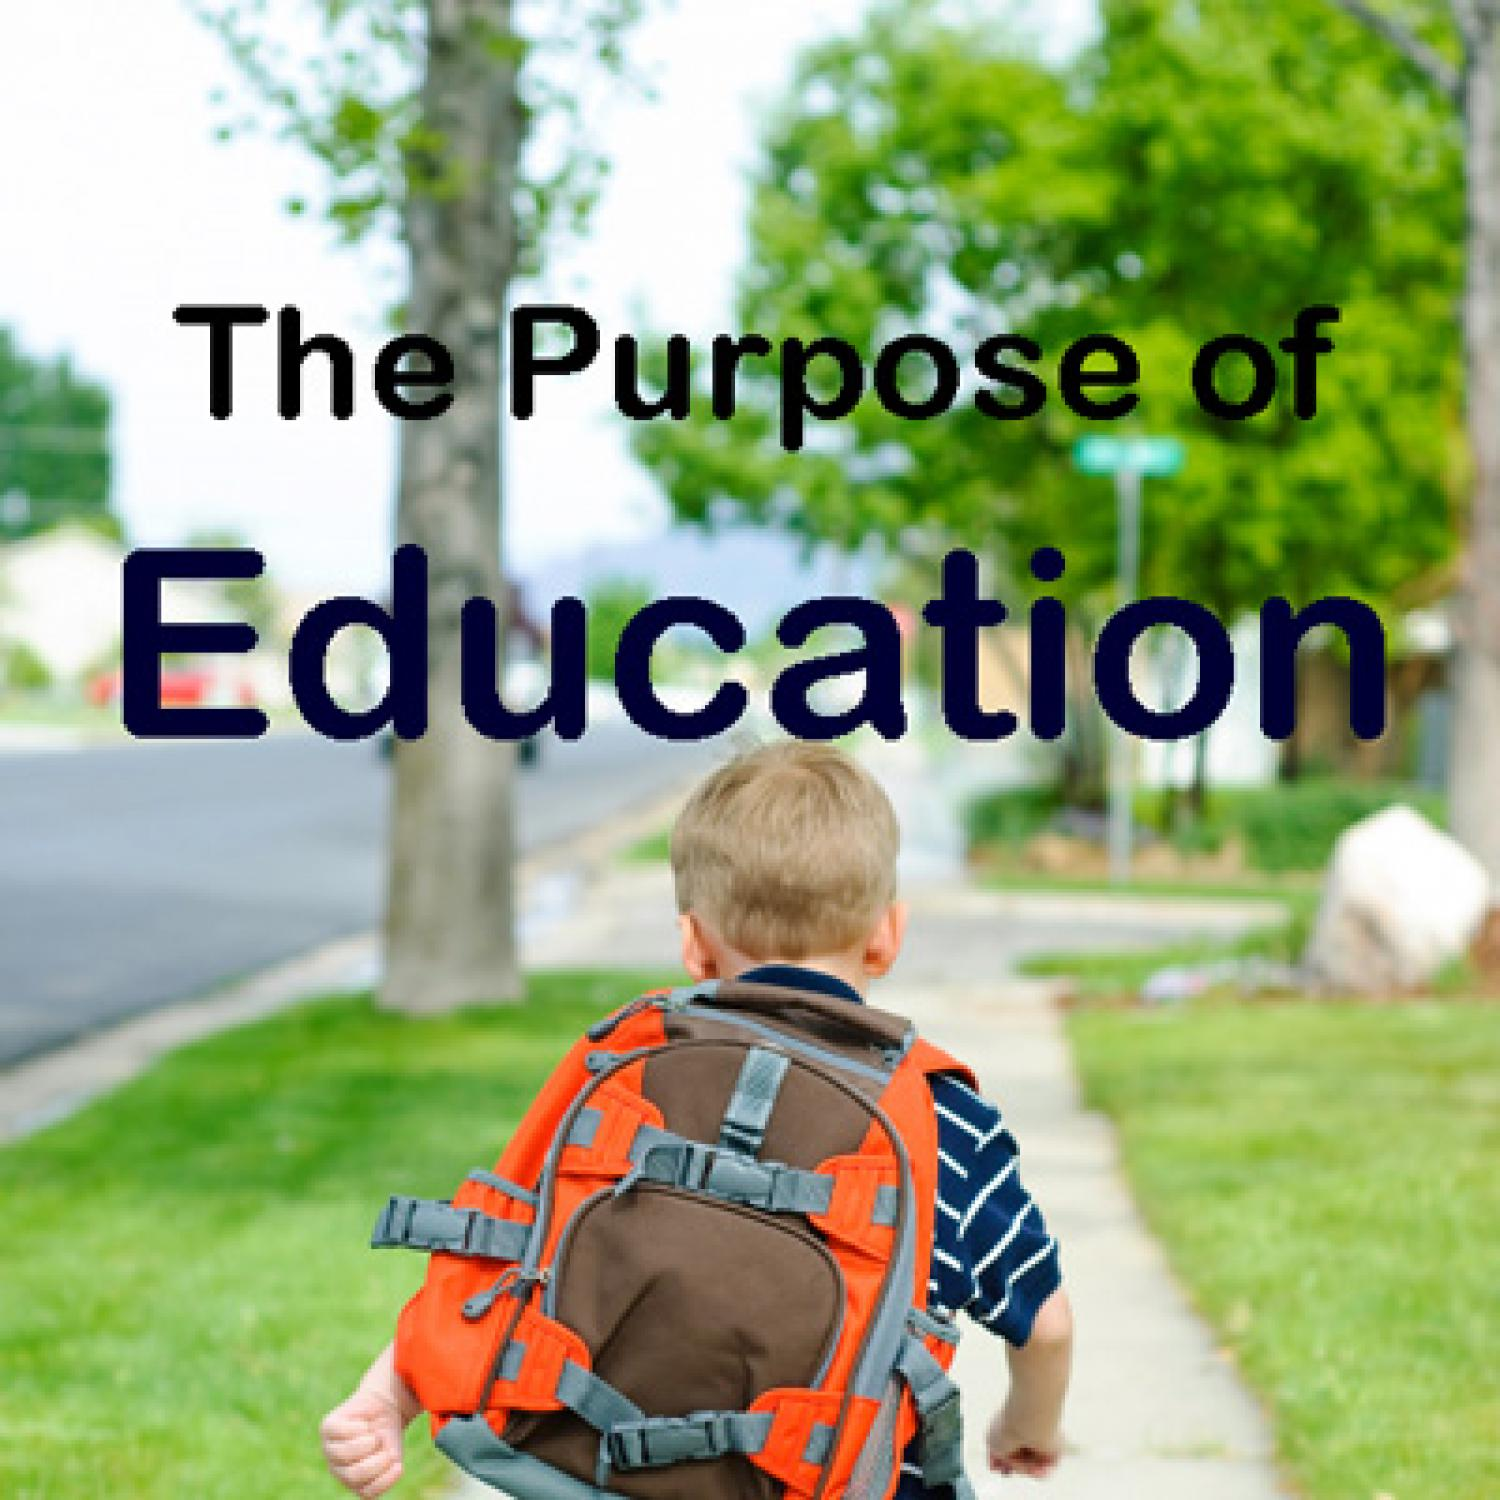 Essay On Purpose Of Education